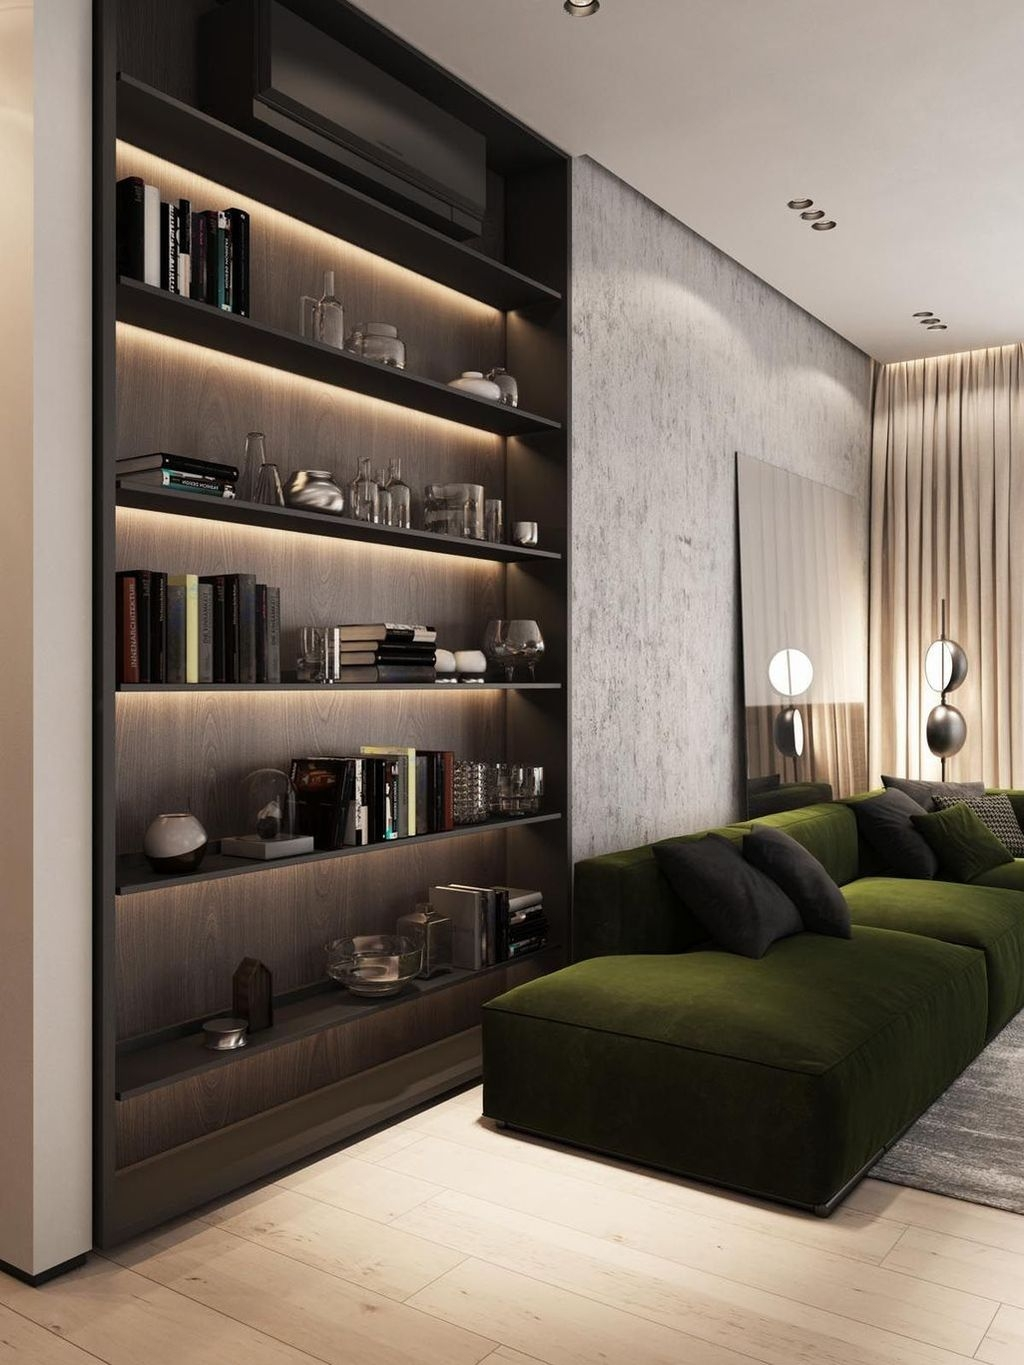 Newest Living Room Apartment Design Ideas For Your Apartment09